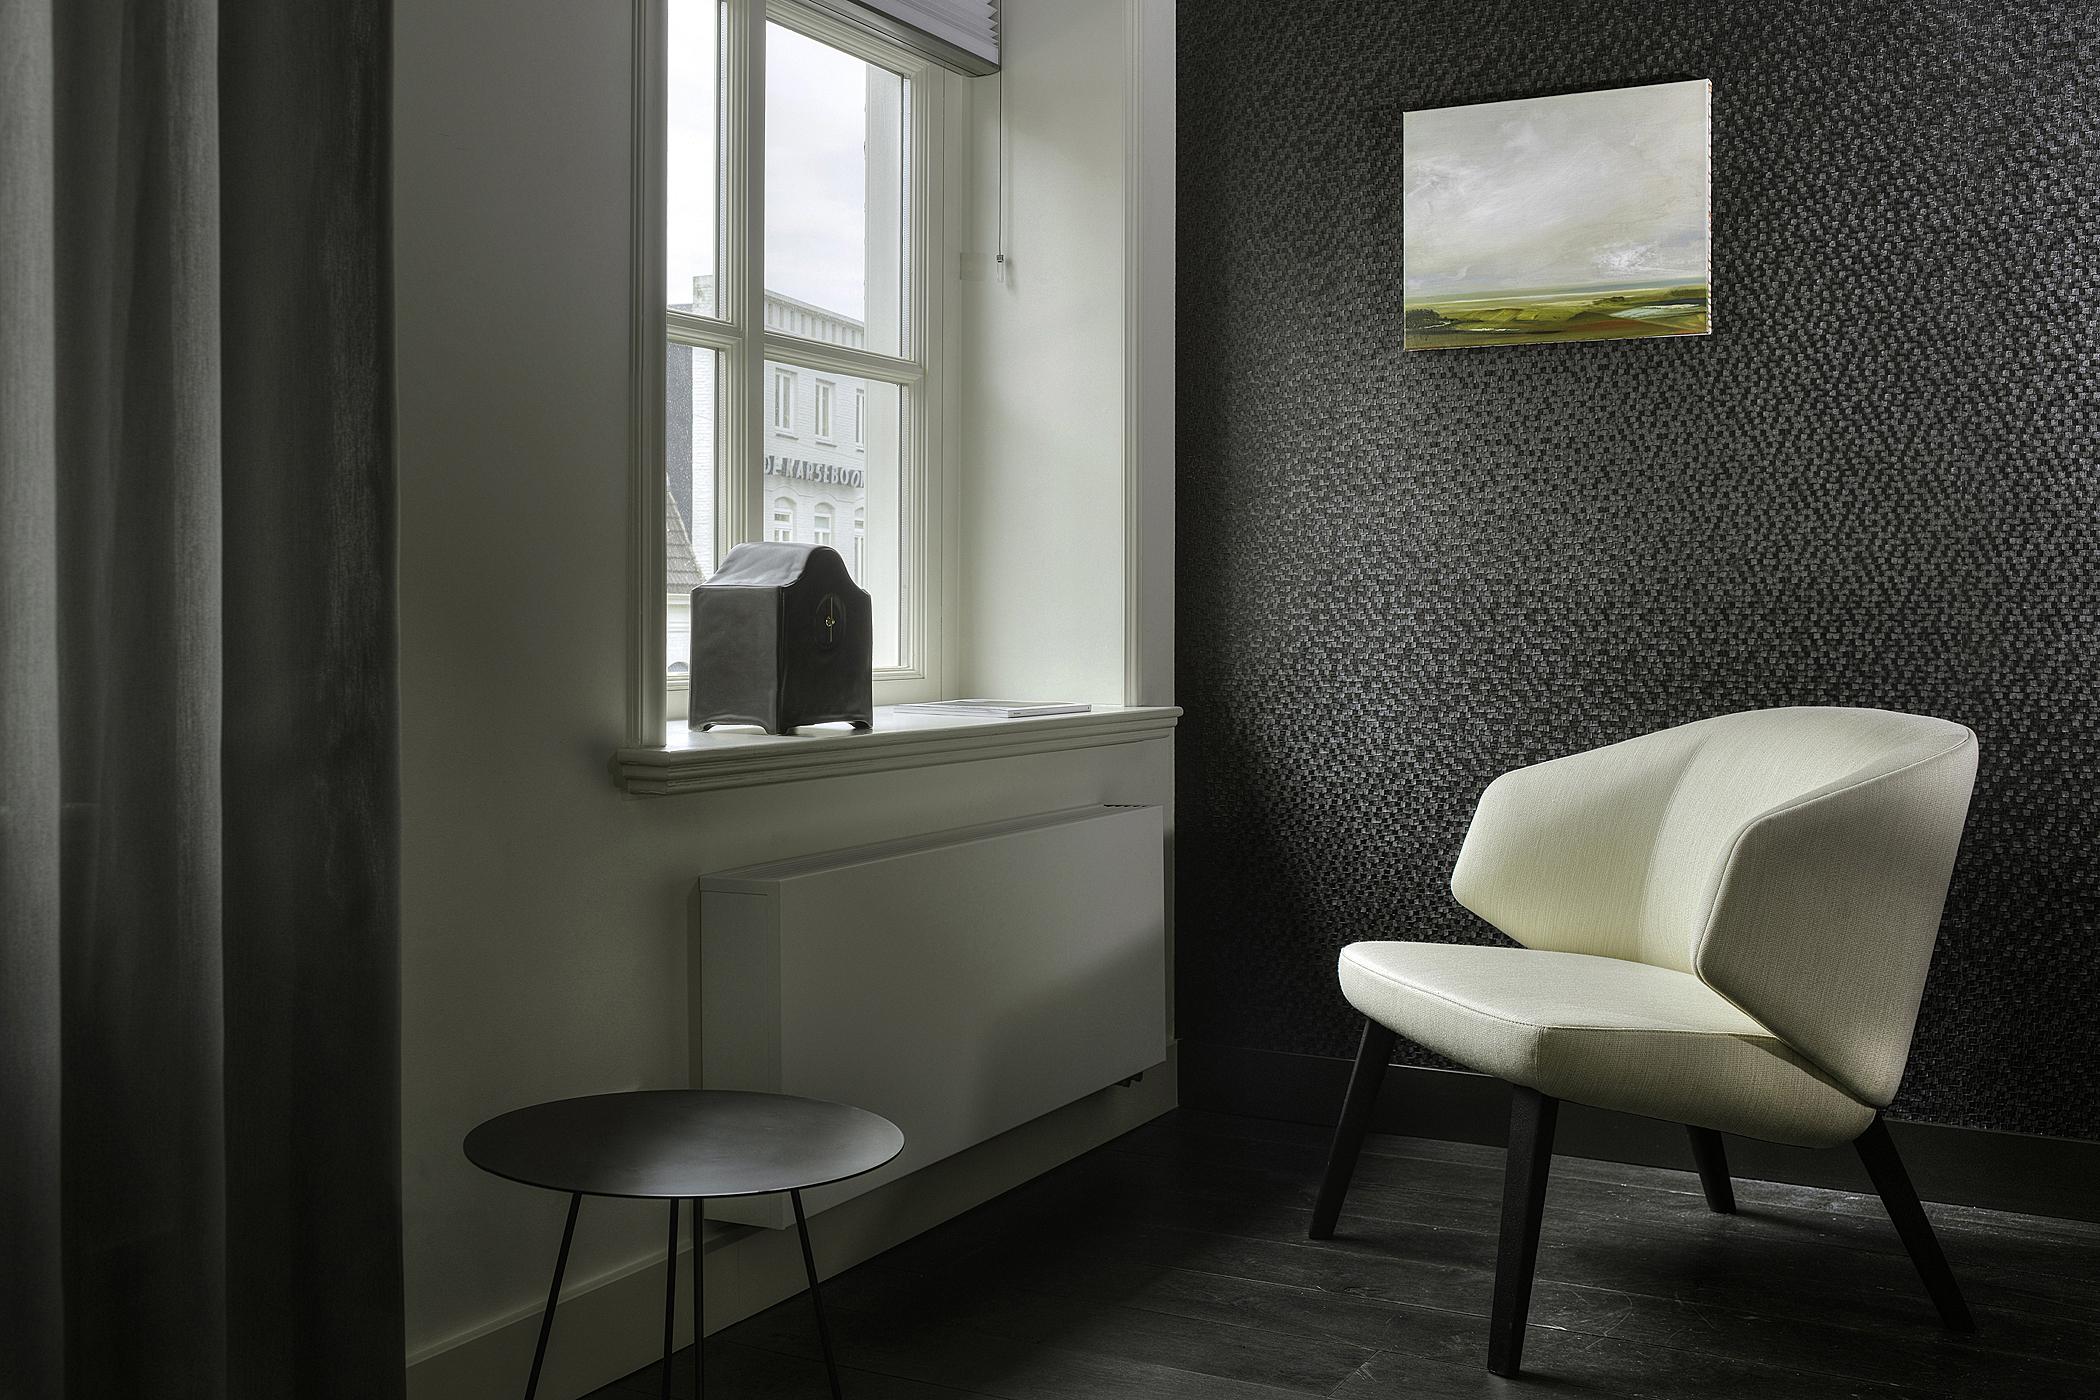 Kazerne Charming Room Chair Image Patrick Meis